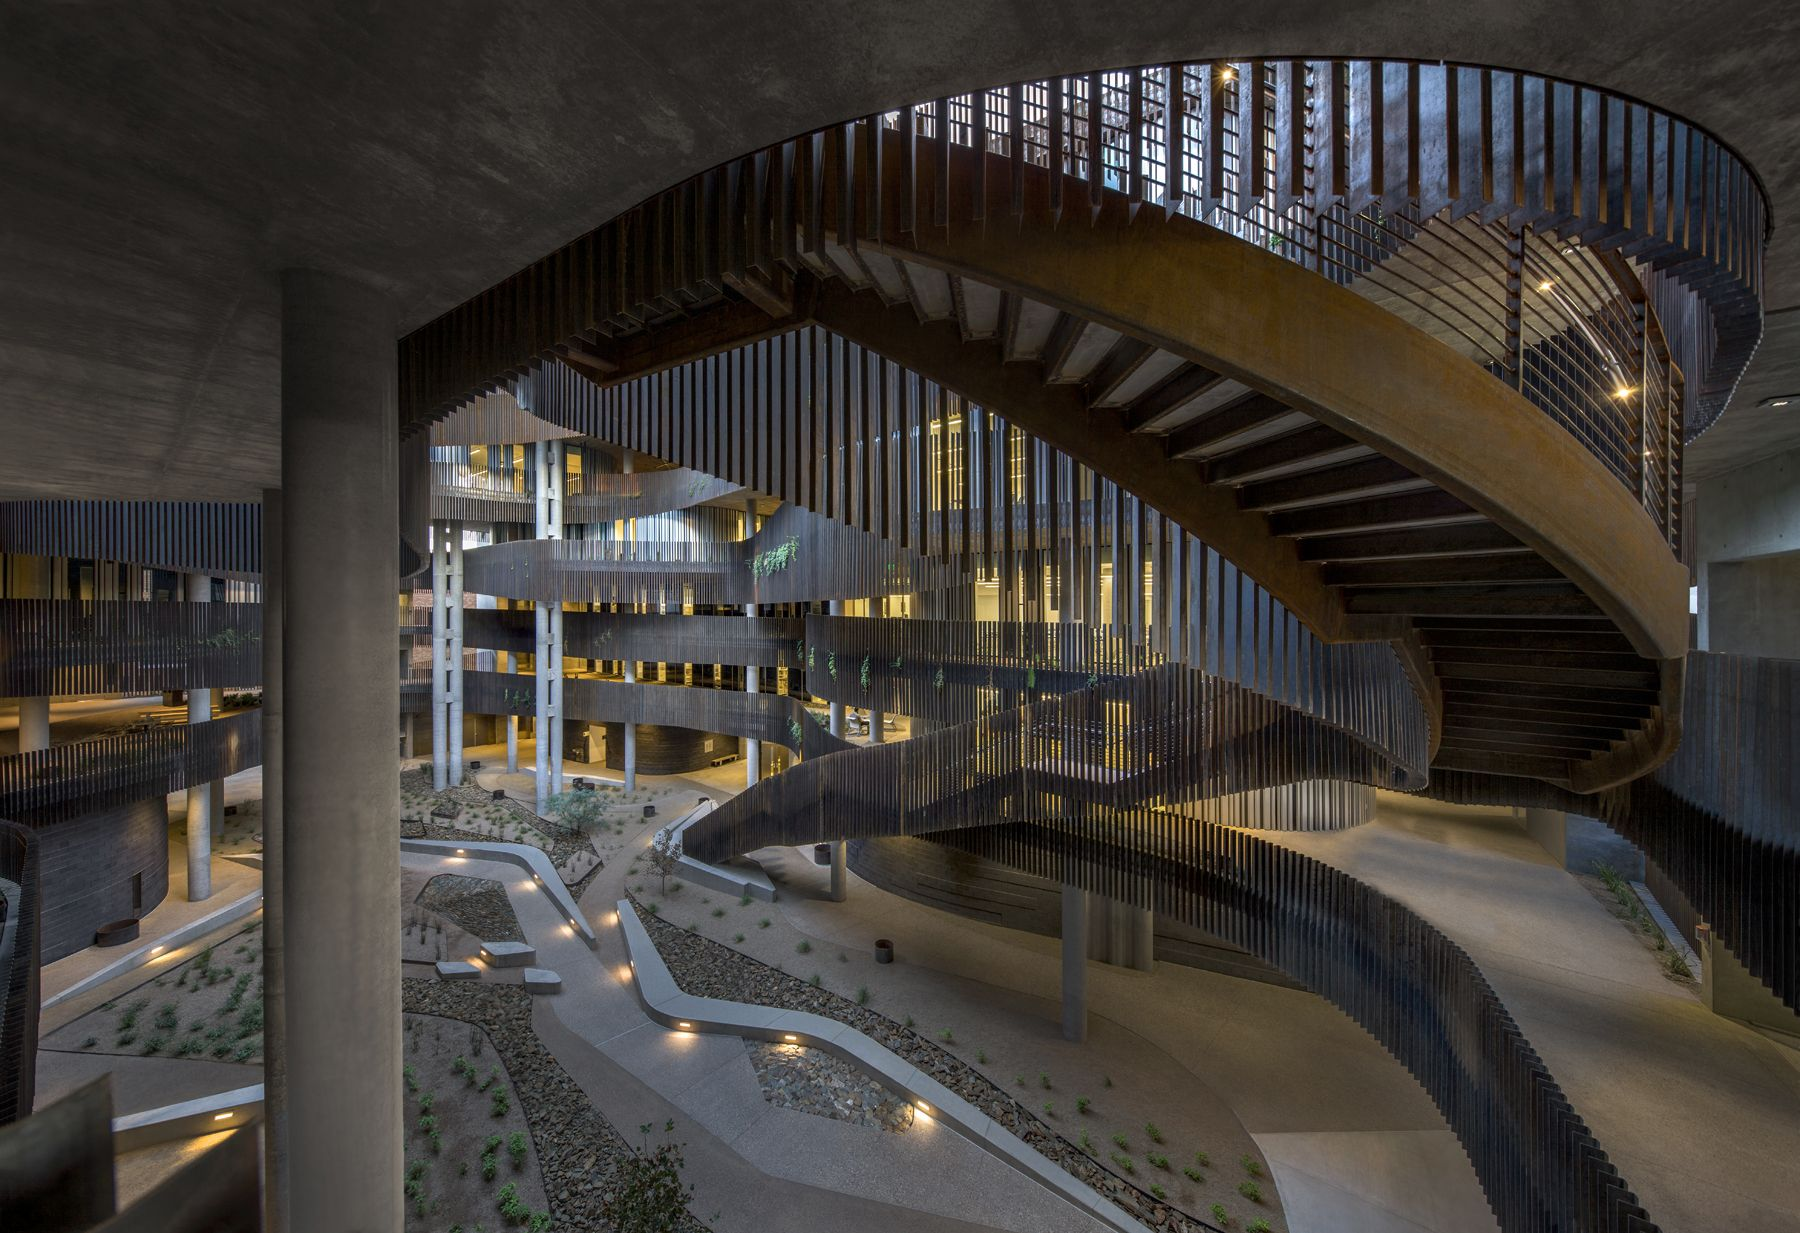 Superbe Environment + Natural Resources 2, University Of Arizona | Richärd+bauer  Architecture